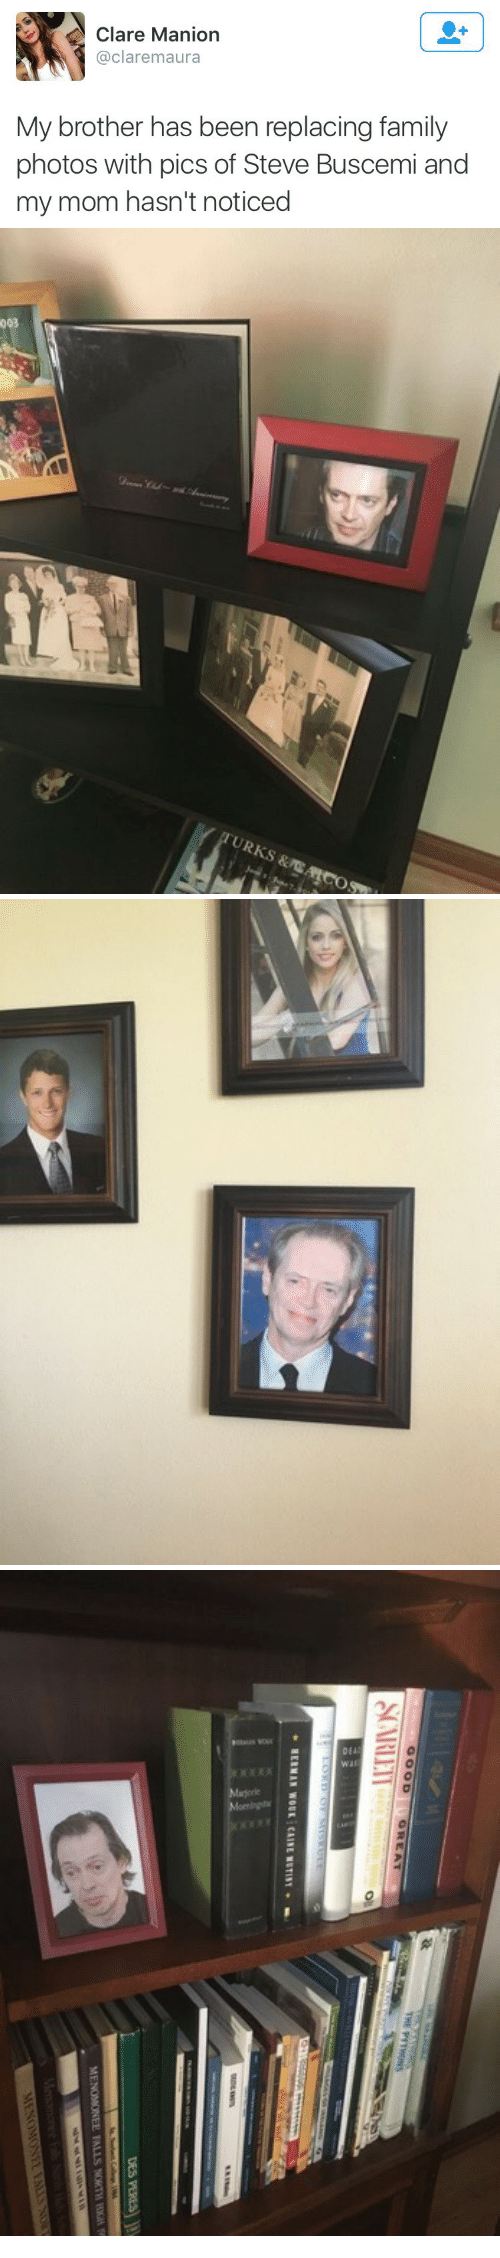 Family Photos: Clare Manion  @claremaura  My brother has been replacing family  photos with pics of Steve Buscemi and  my mom hasn't noticed   003